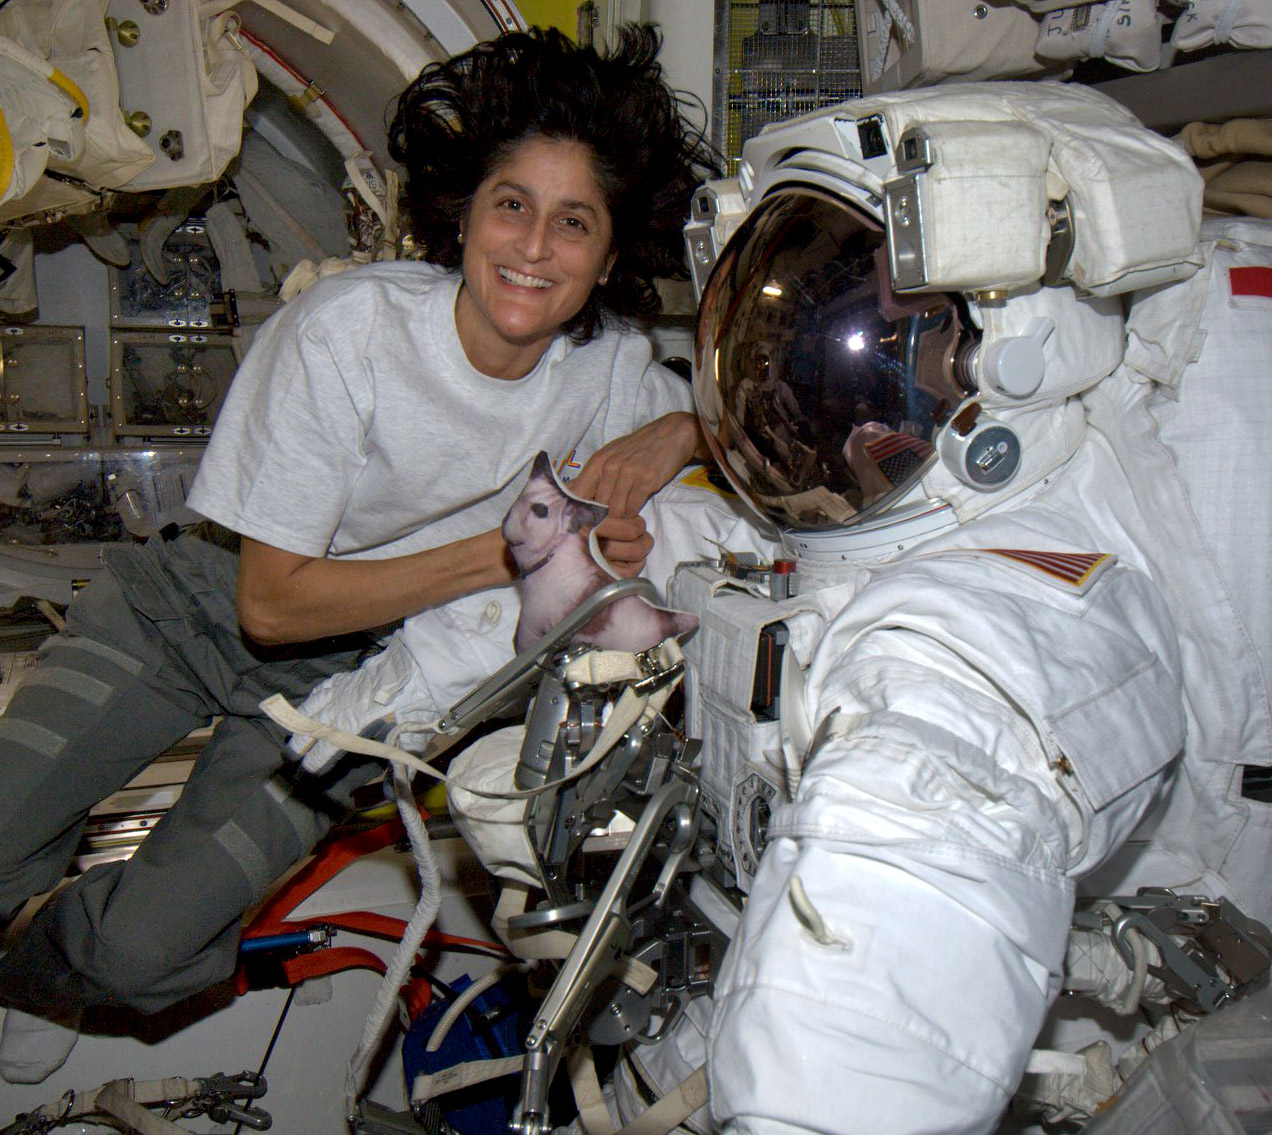 suni williams spacesuit weirddogpillow